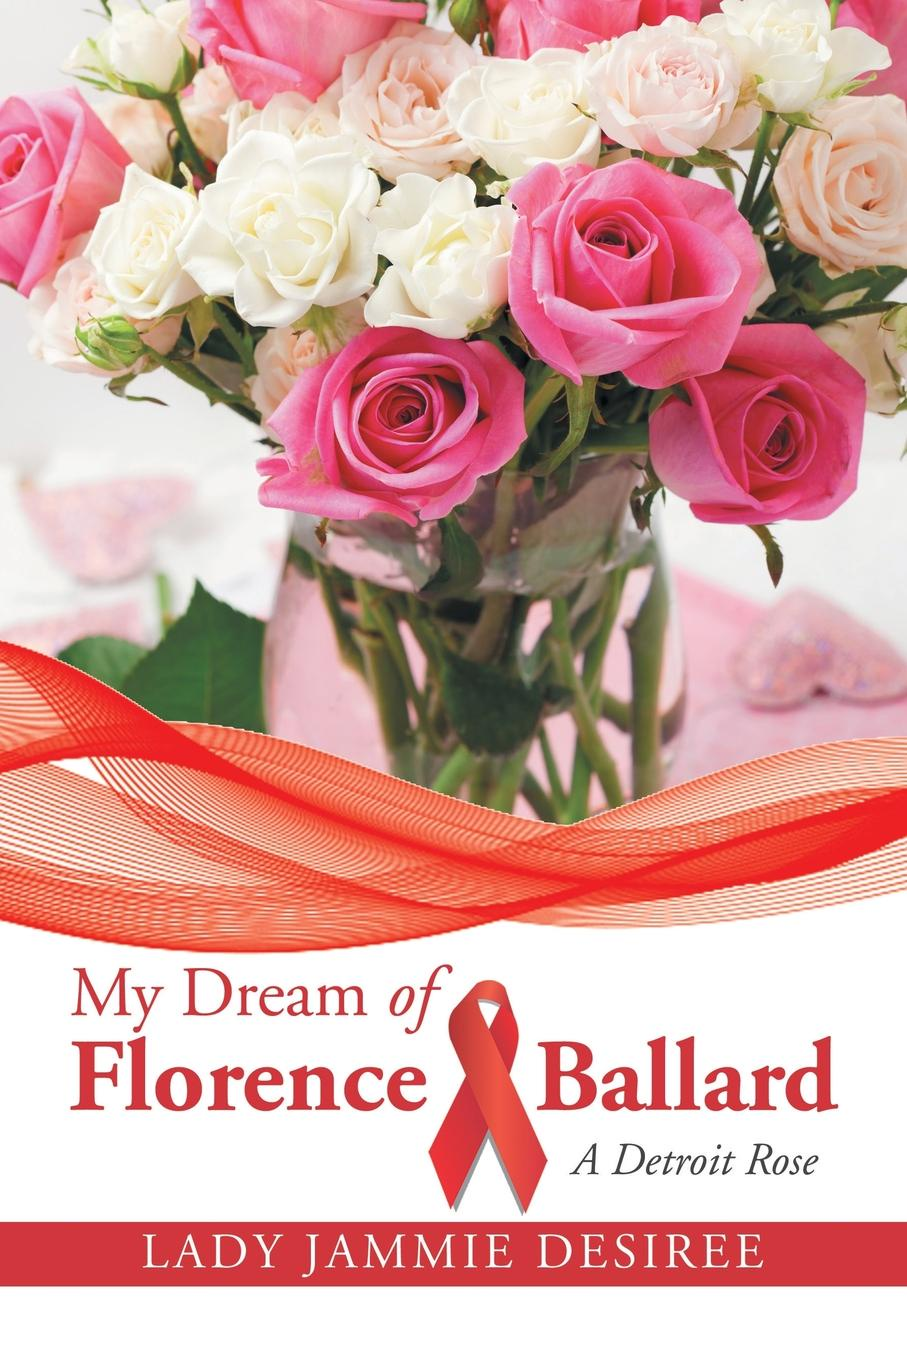 цена Lady jammie Desiree My Dream of Florence Ballard. A Detroit Rose онлайн в 2017 году